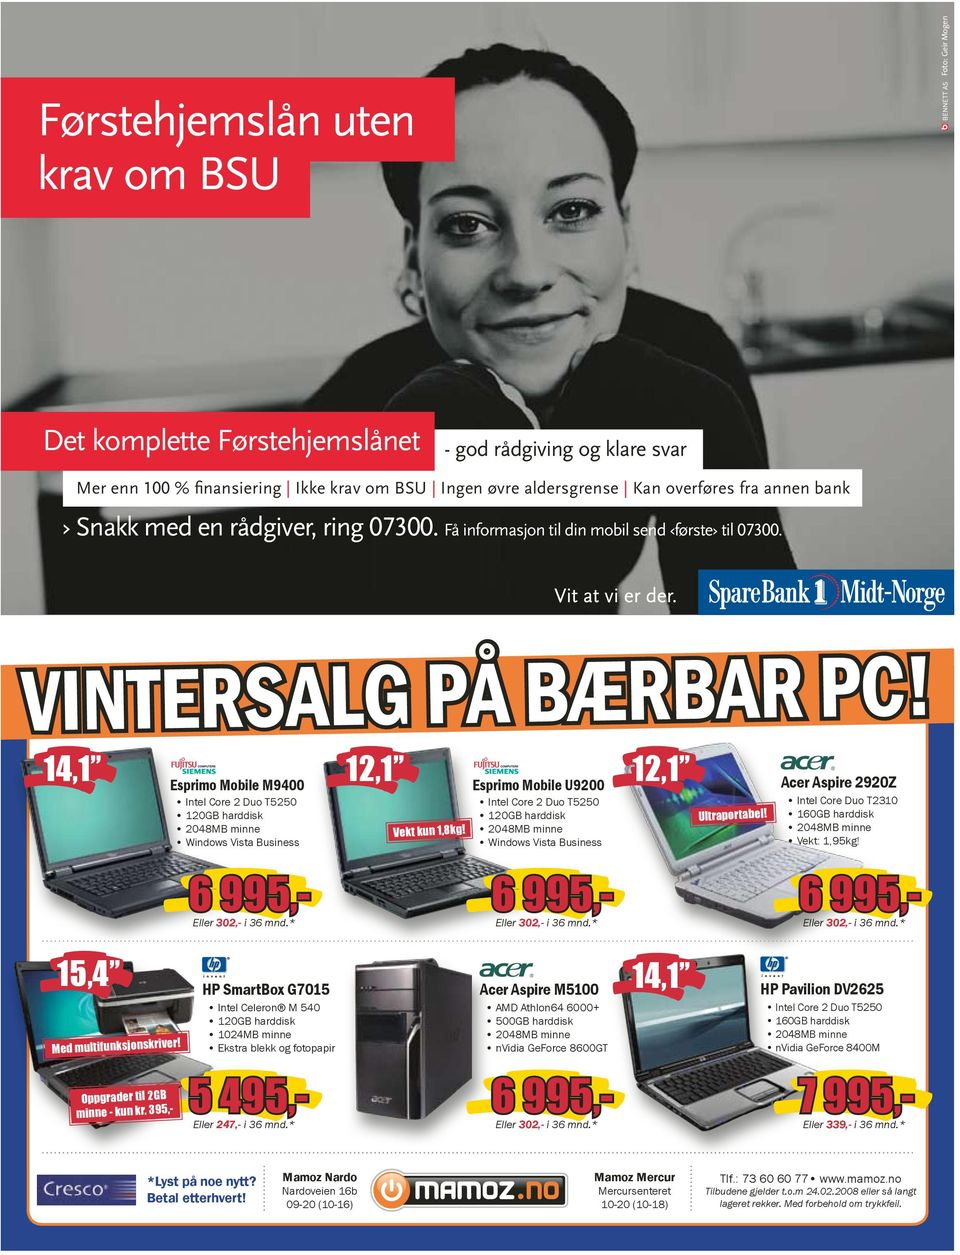 VINTERSALG PÅ BÆRBAR PC! Esprimo Mobile U9200 Intel Core 2 Duo T5250 120GB harddisk 2048MB minne Windows Vista Business 12,1 Ultraportabel!